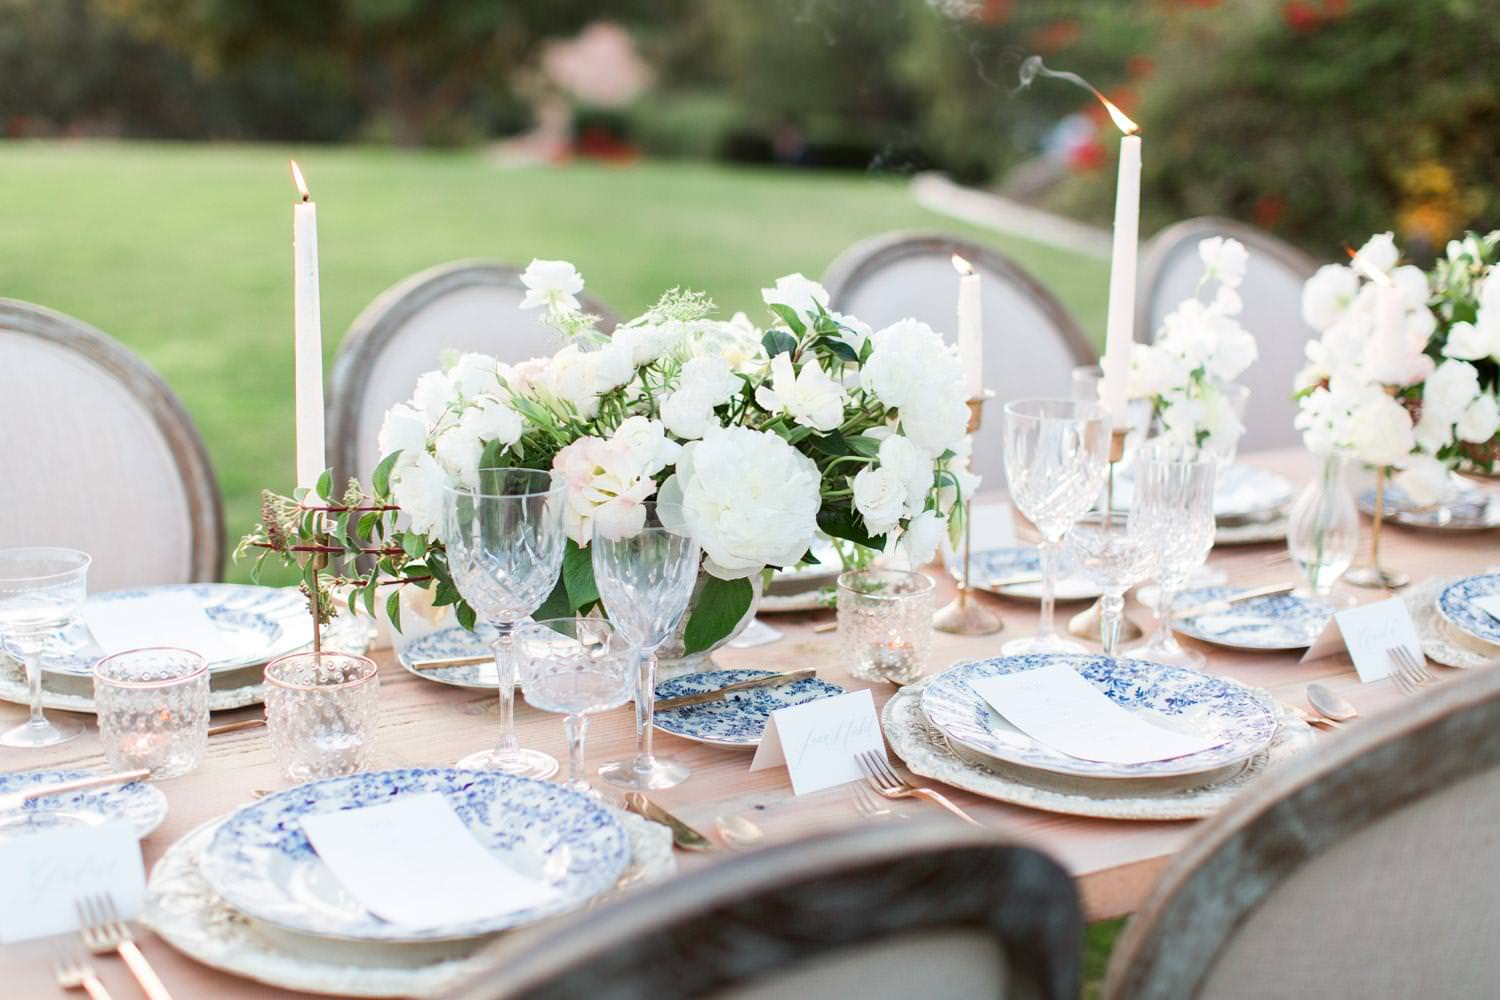 Rancho Valencia Wedding Photography by Cavin Elizabeth, wedding tablescape with chinoiserie plates and white and green flowers